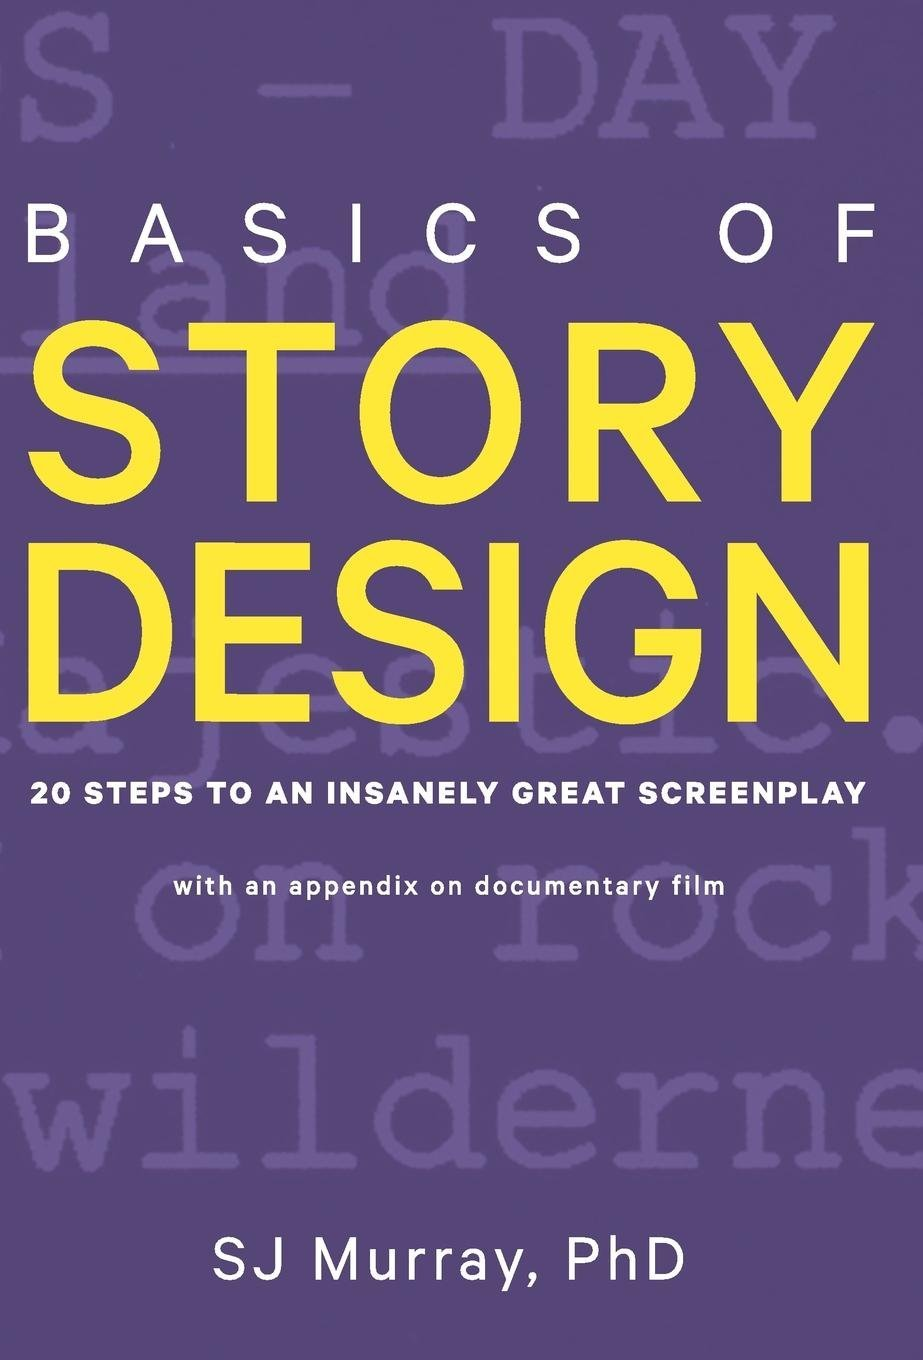 Basics of Story Design: 20 Steps to an Insanely Great Screenplay pdf